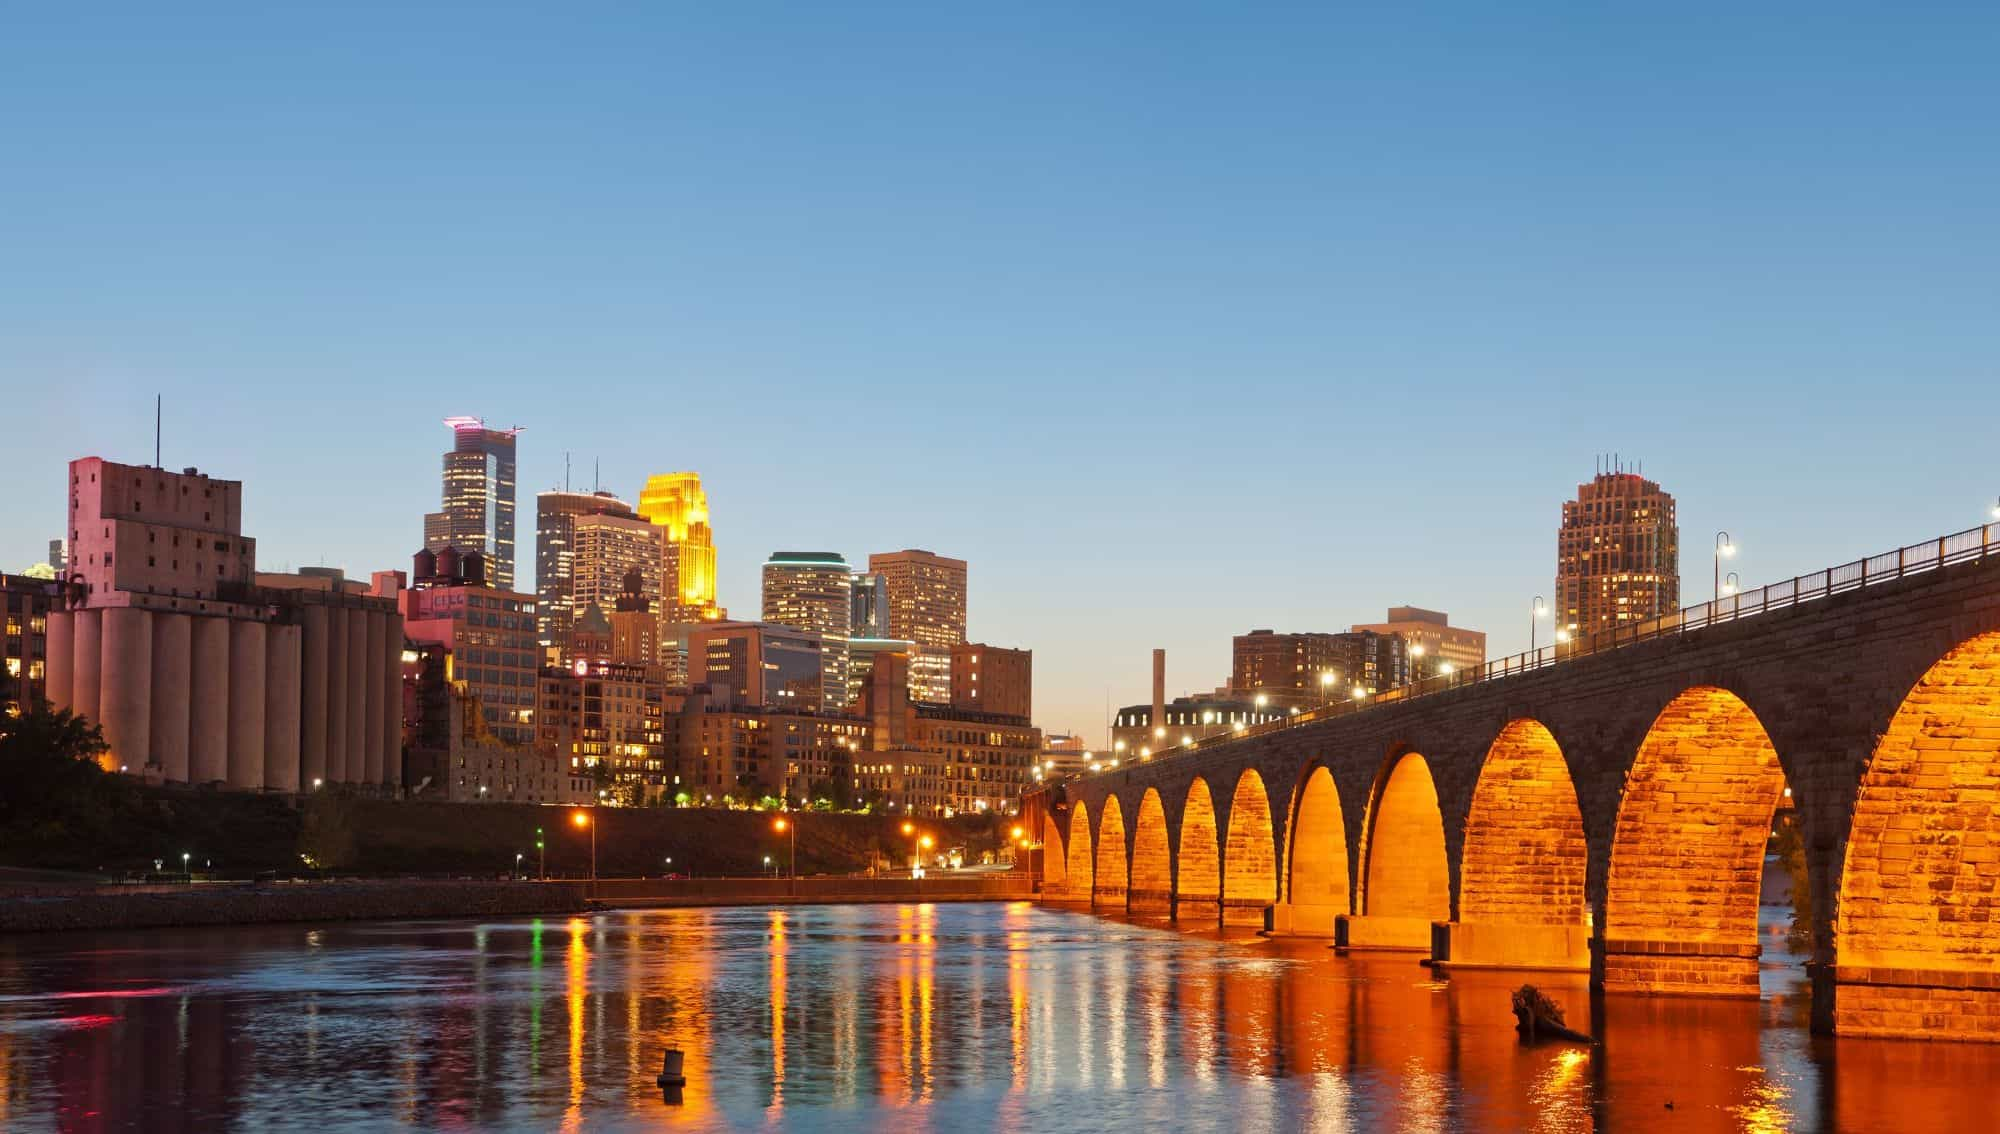 minneapolis-stone-arch-bridge-view